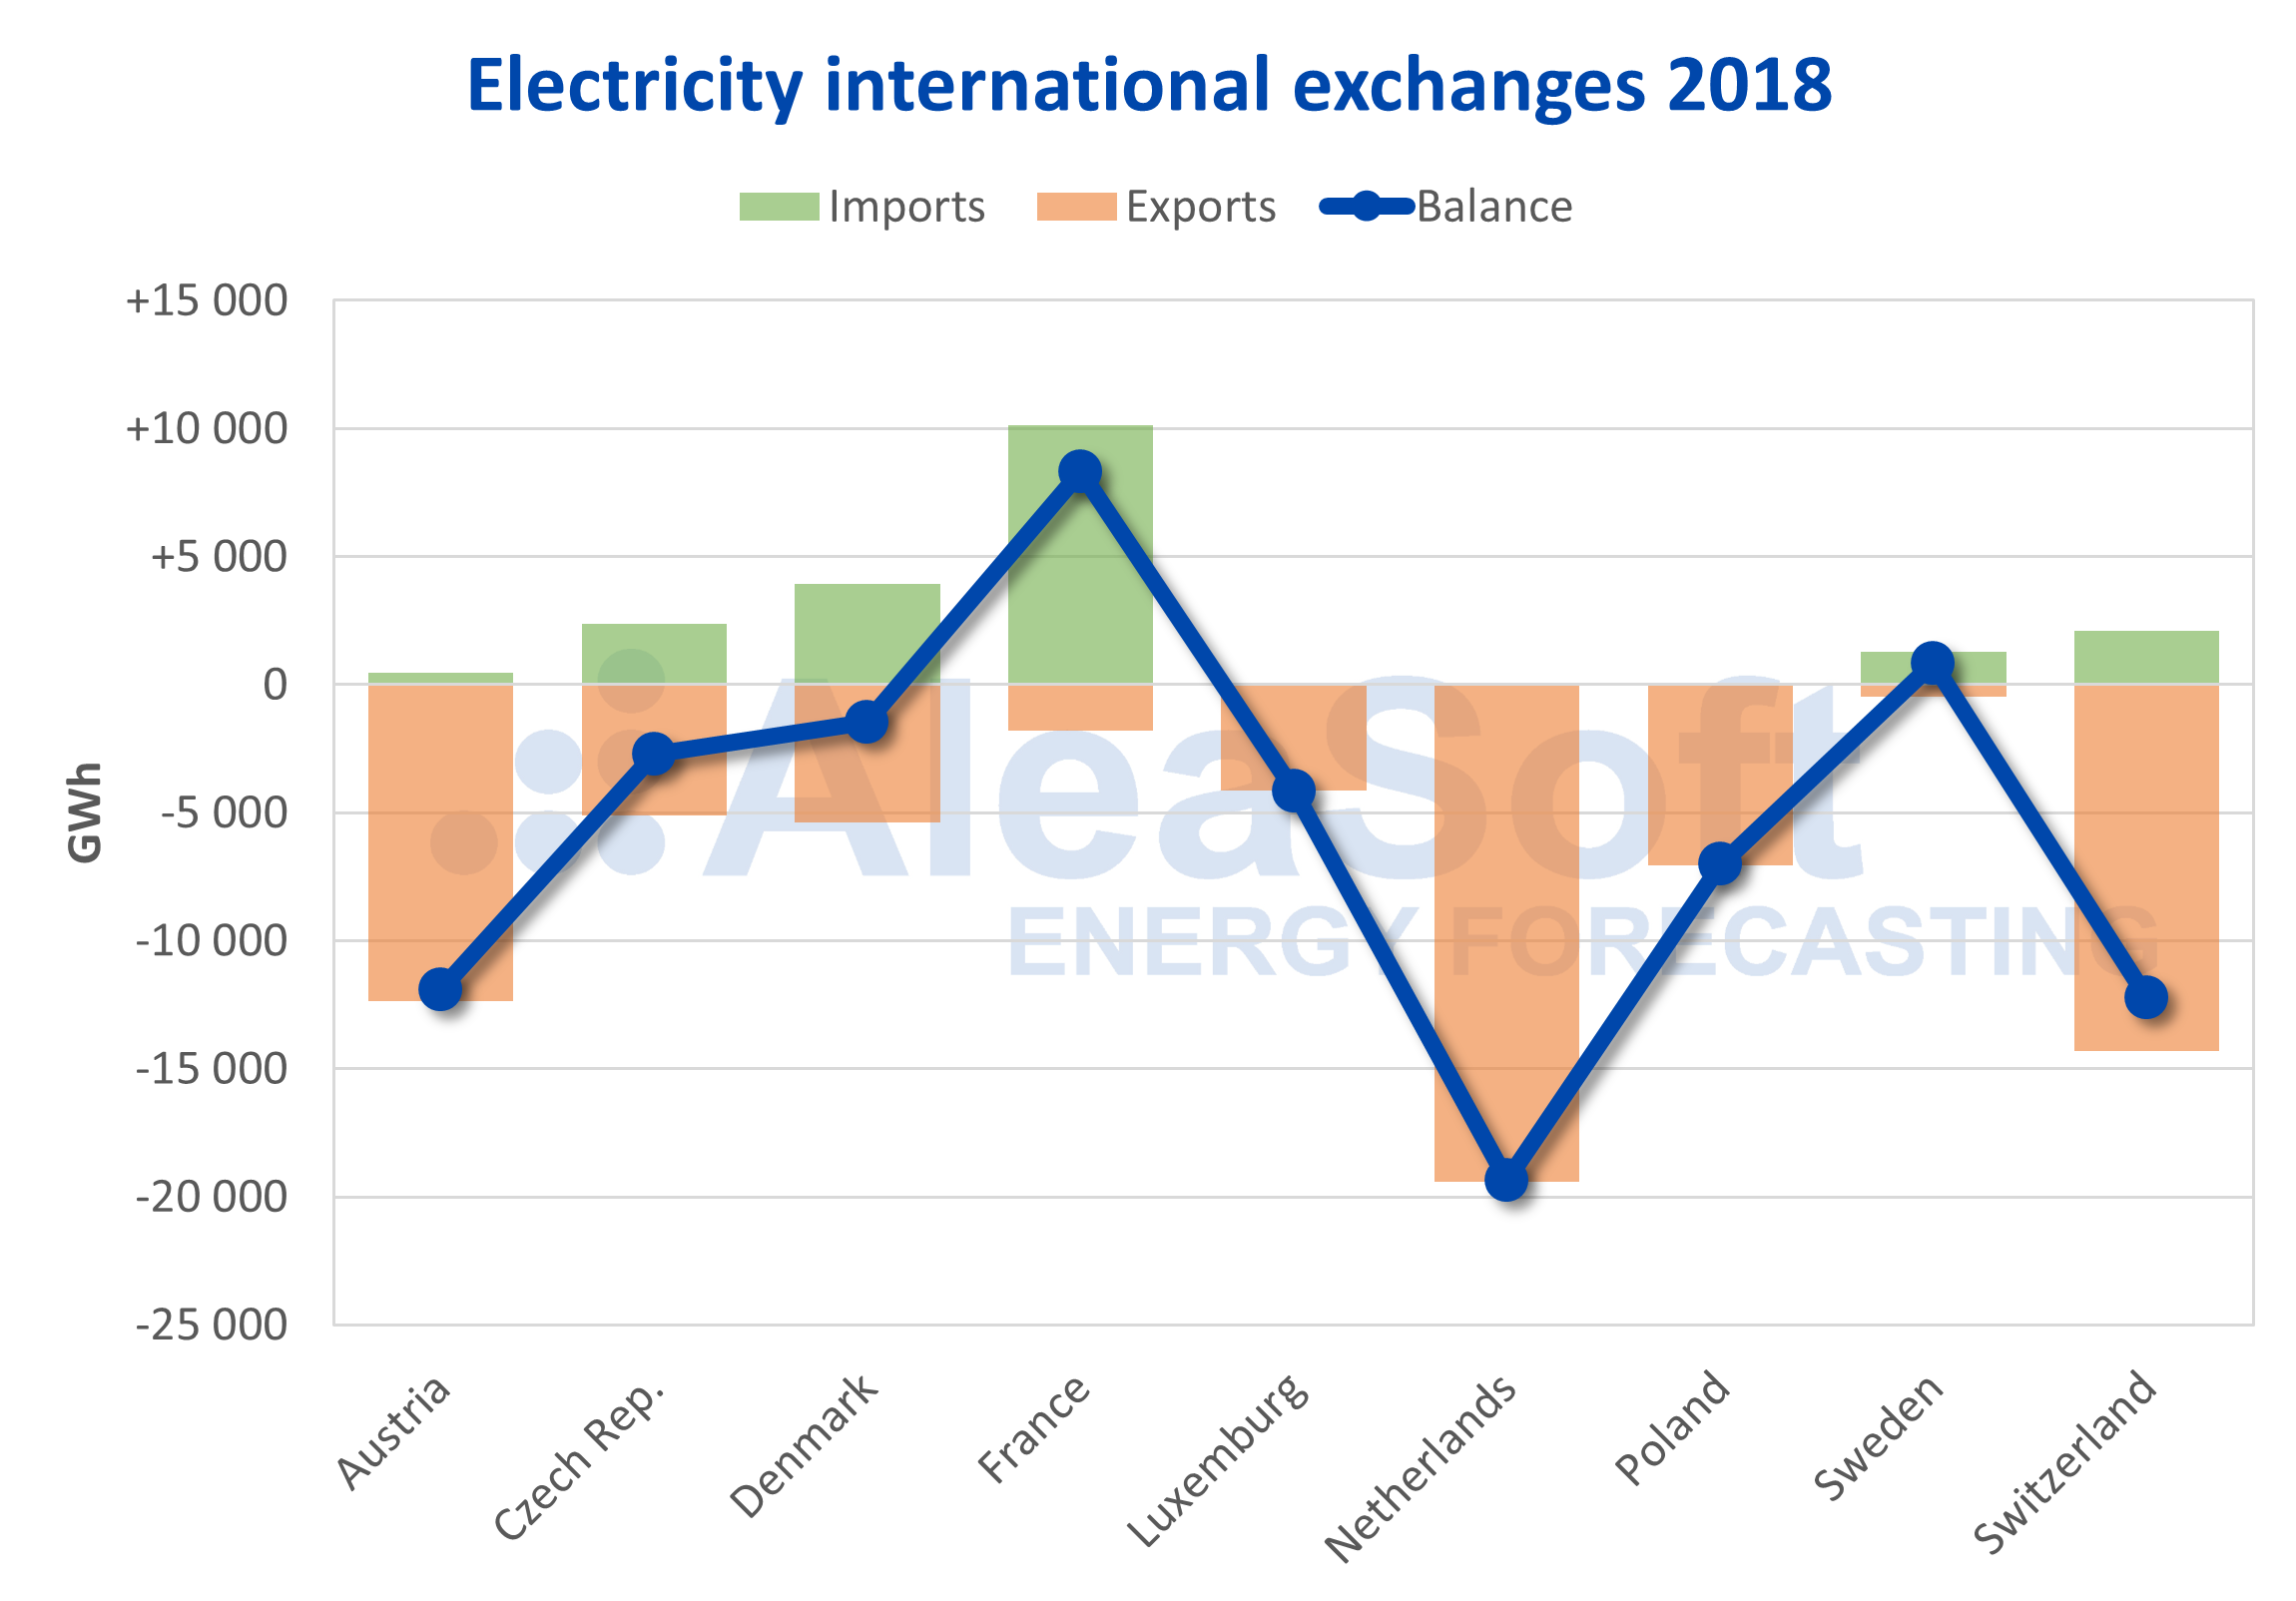 AleaSoft - Germany international electricity exchanges 2018